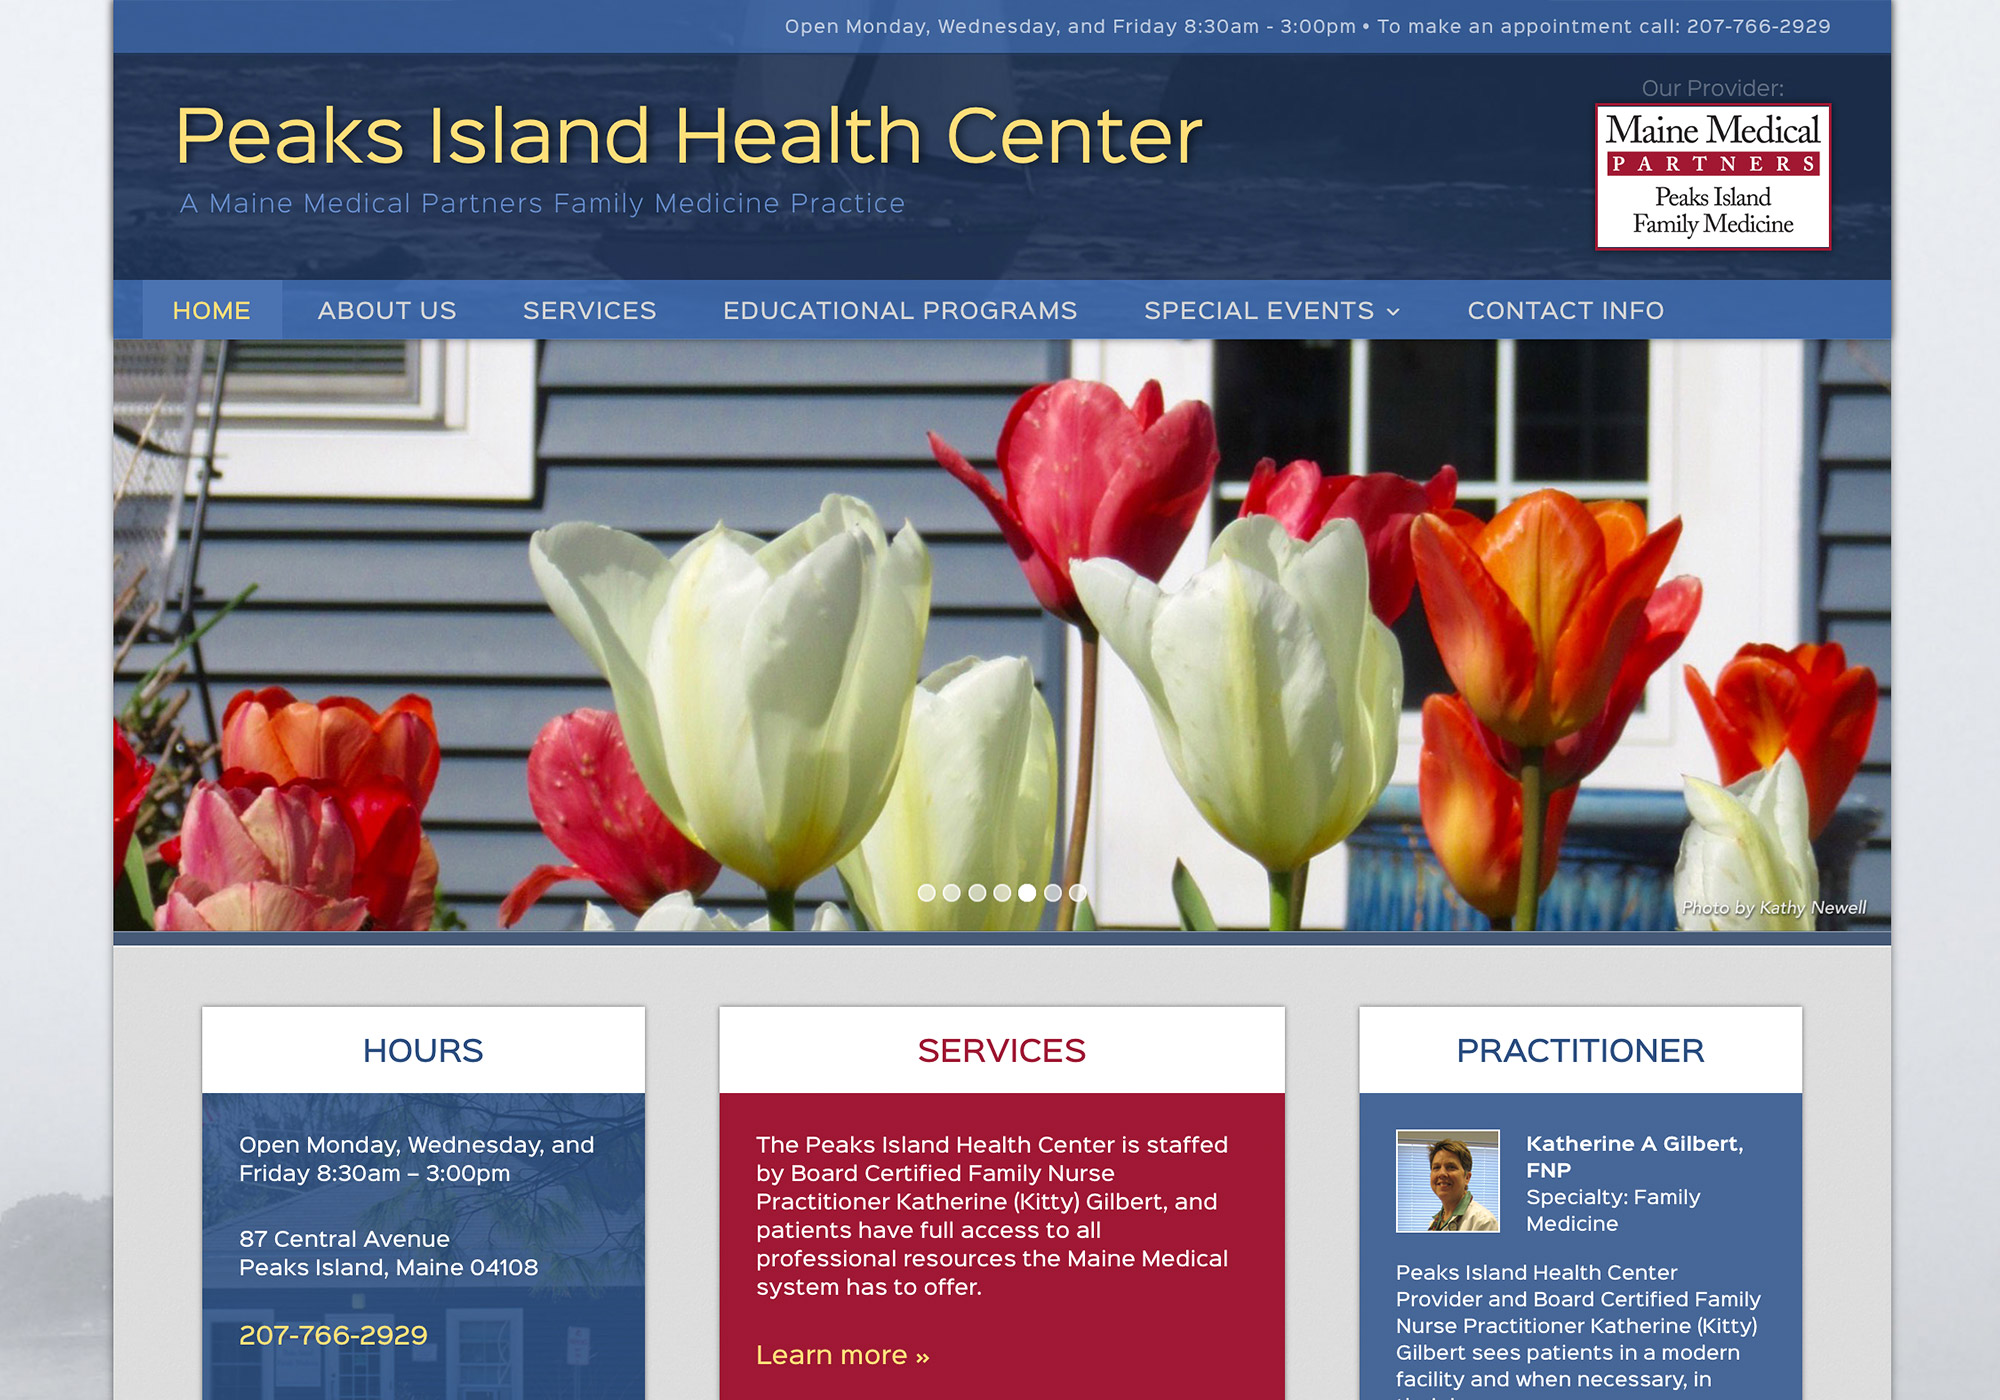 A screenshot from the top of the Peaks Island Health Center website - showcasing the interactive slideshow built by SlickFish.